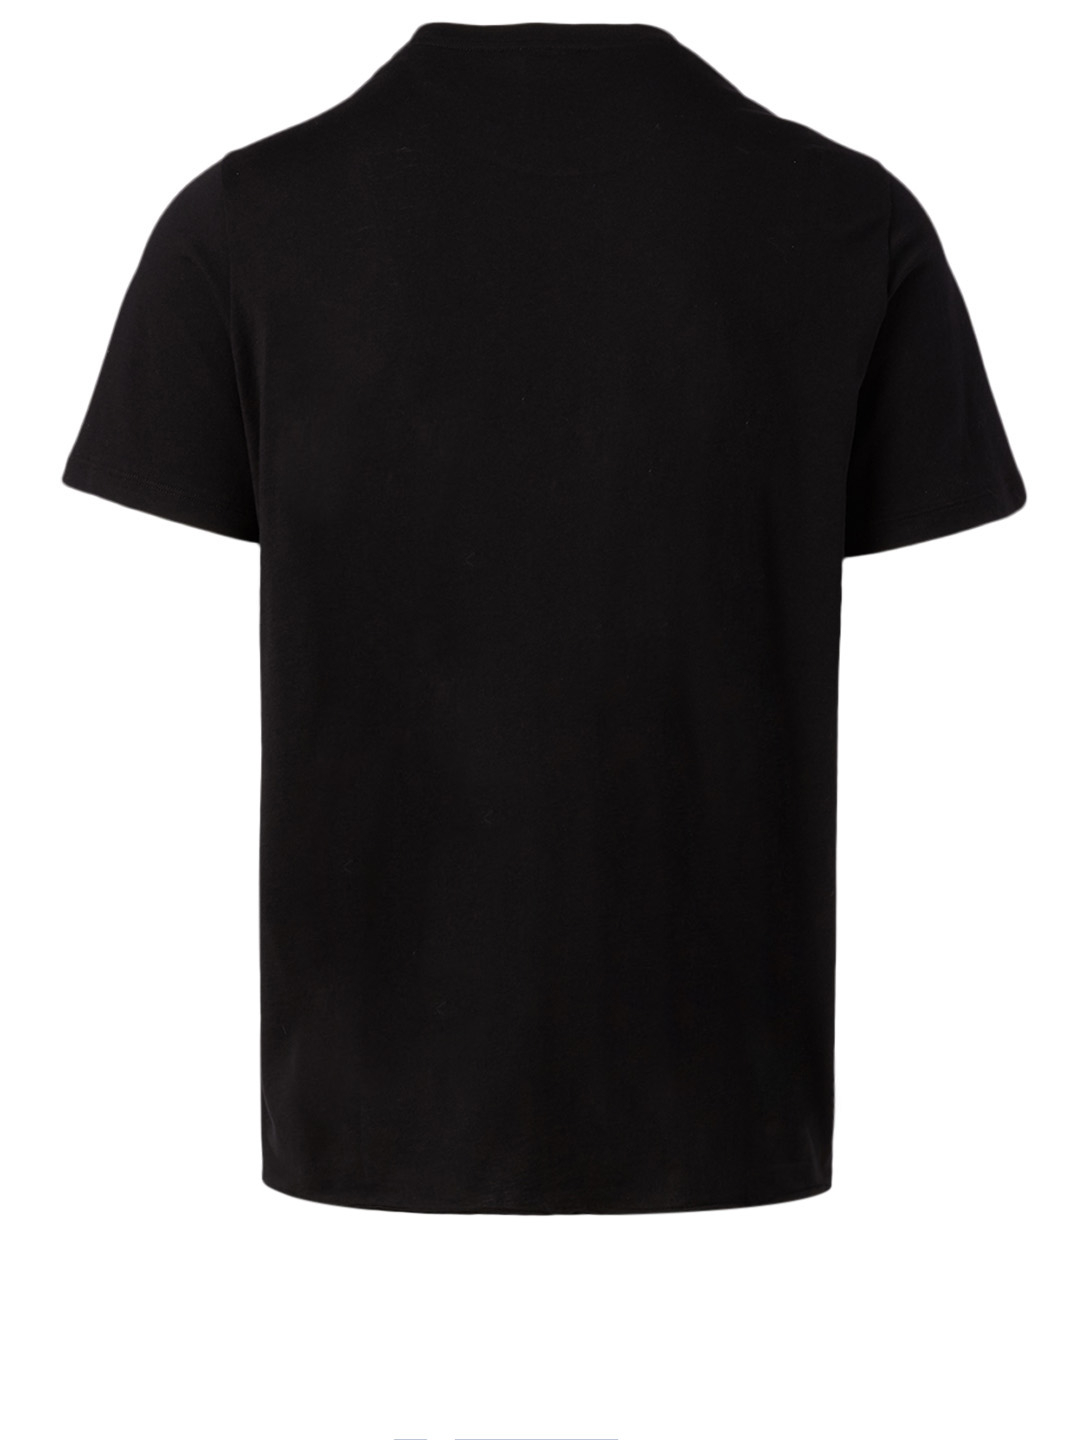 SAINT LAURENT Cotton Logo T-Shirt Men's Black